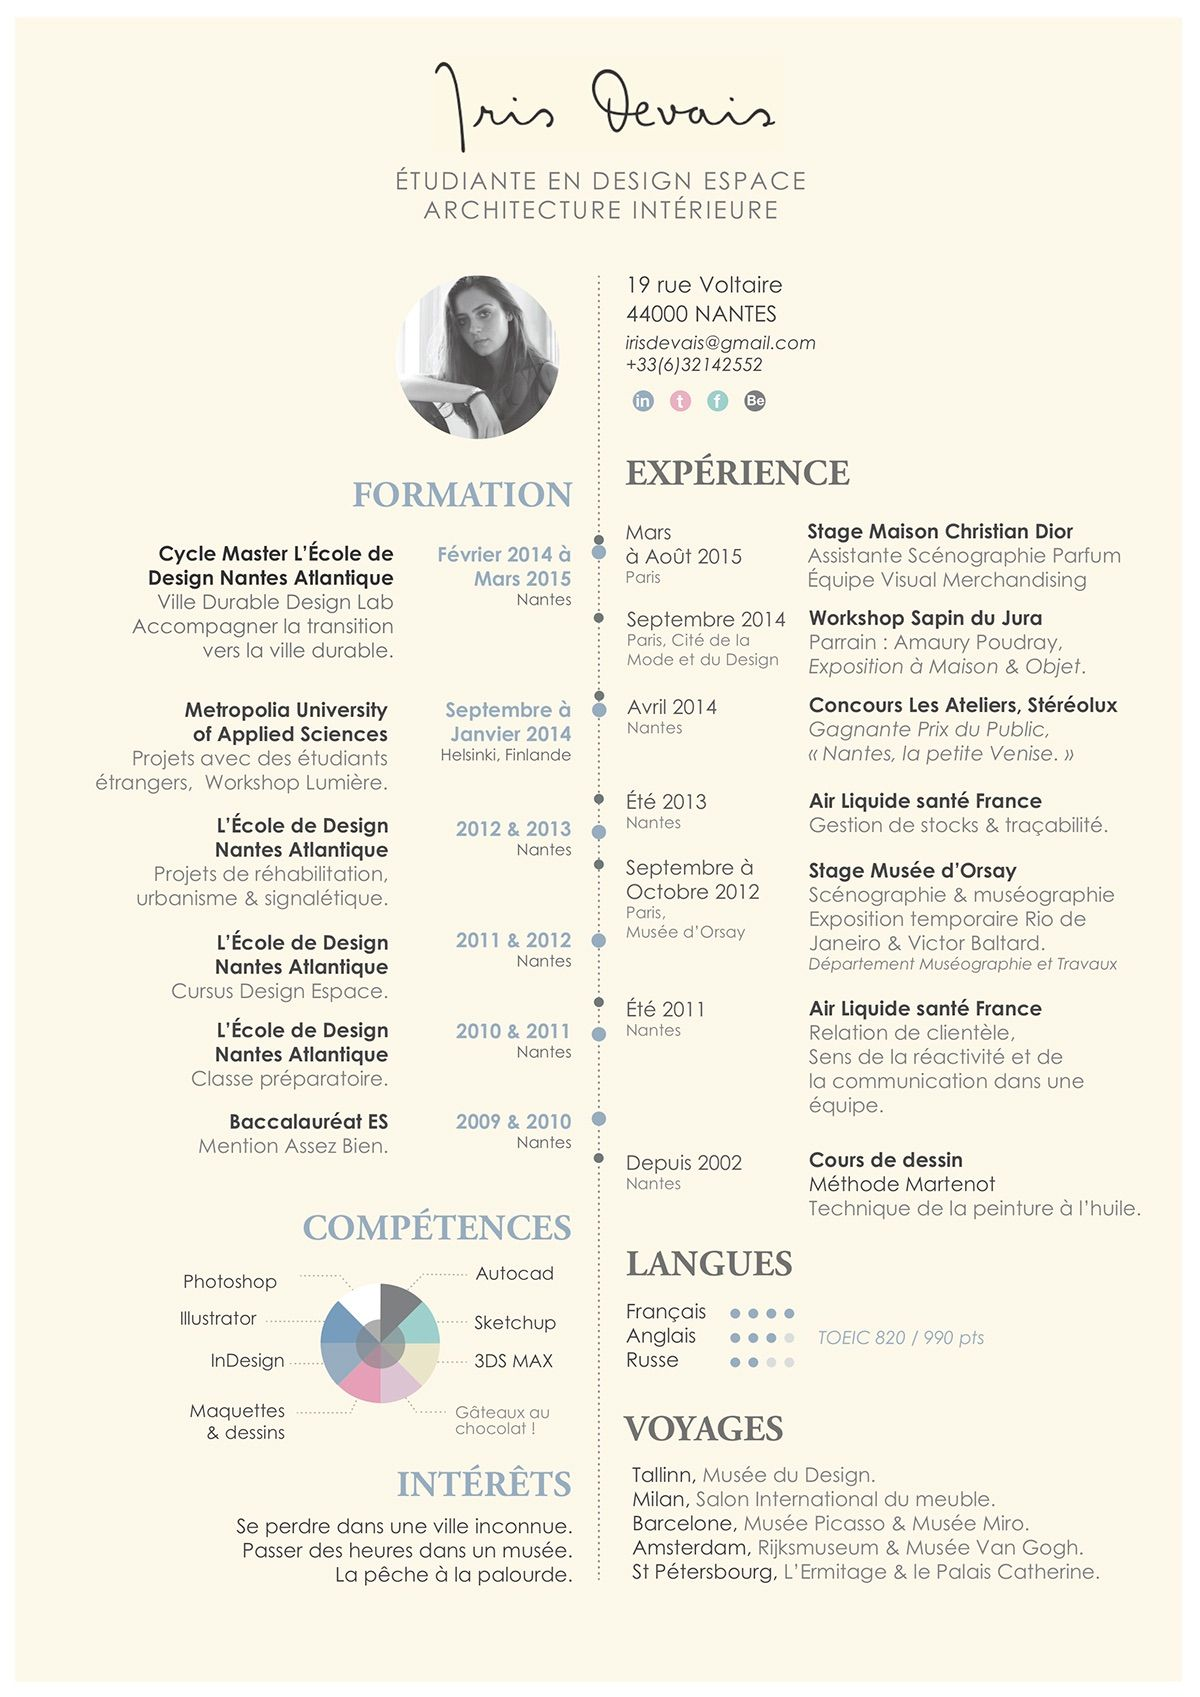 Curriculum Vitae. on Behance | Graphic design | Pinterest ...